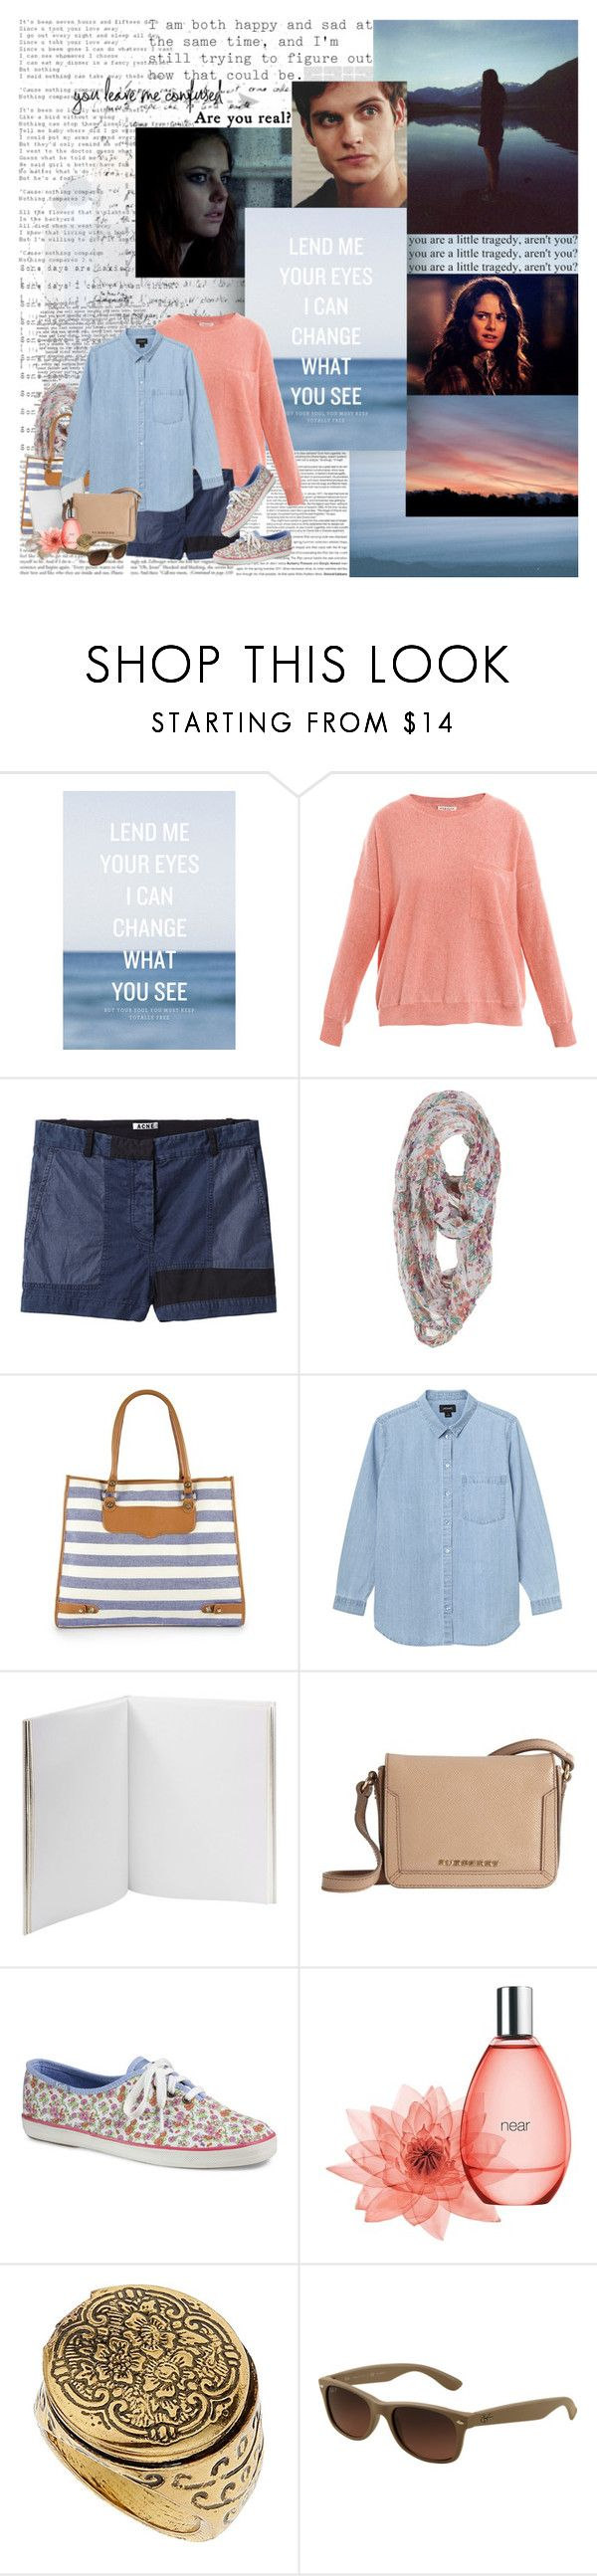 """""""Give it up. I can't give it up."""" by luxecouture ❤ liked on Polyvore featuring Elite, Effy Jewelry, Demylee, Acne Studios, Rebecca Minkoff, Monki, Pineider, Burberry, Keds and Gap"""